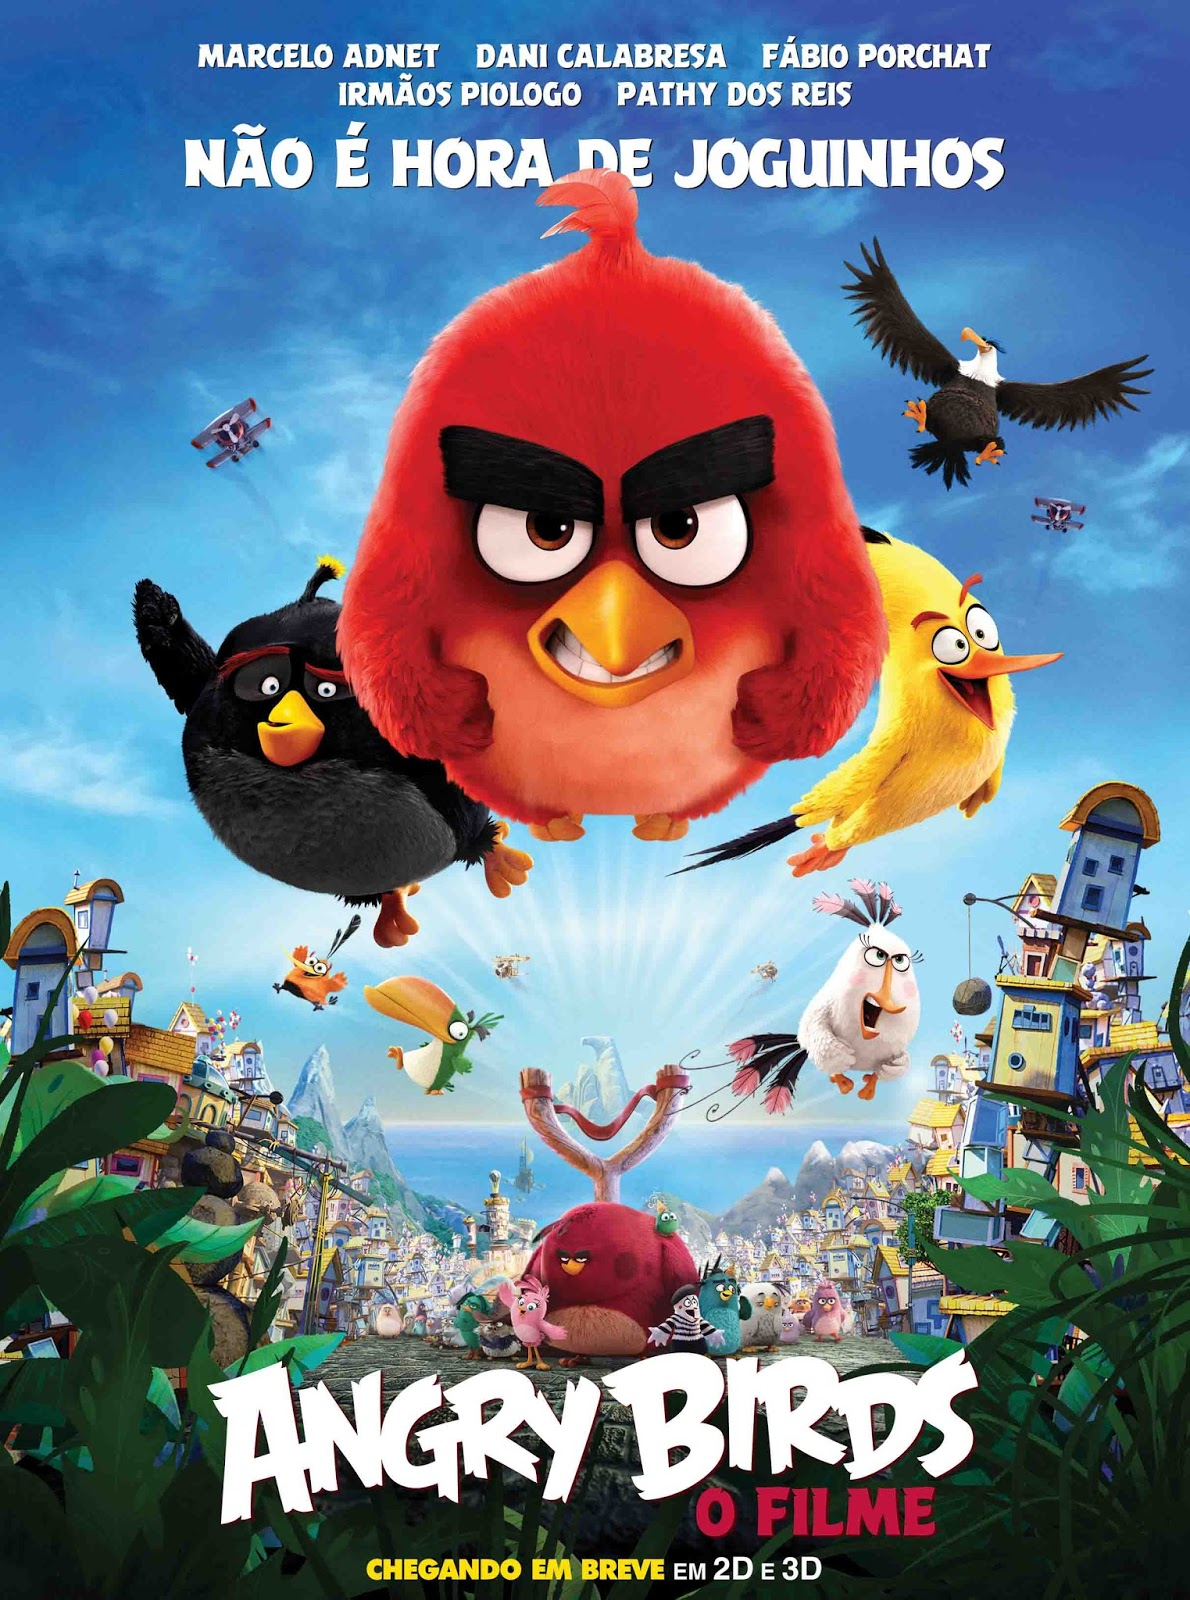 Angry Birds: O Filme 3D Torrent - Blu-ray Rip 1080p Dual Áudio (2016)